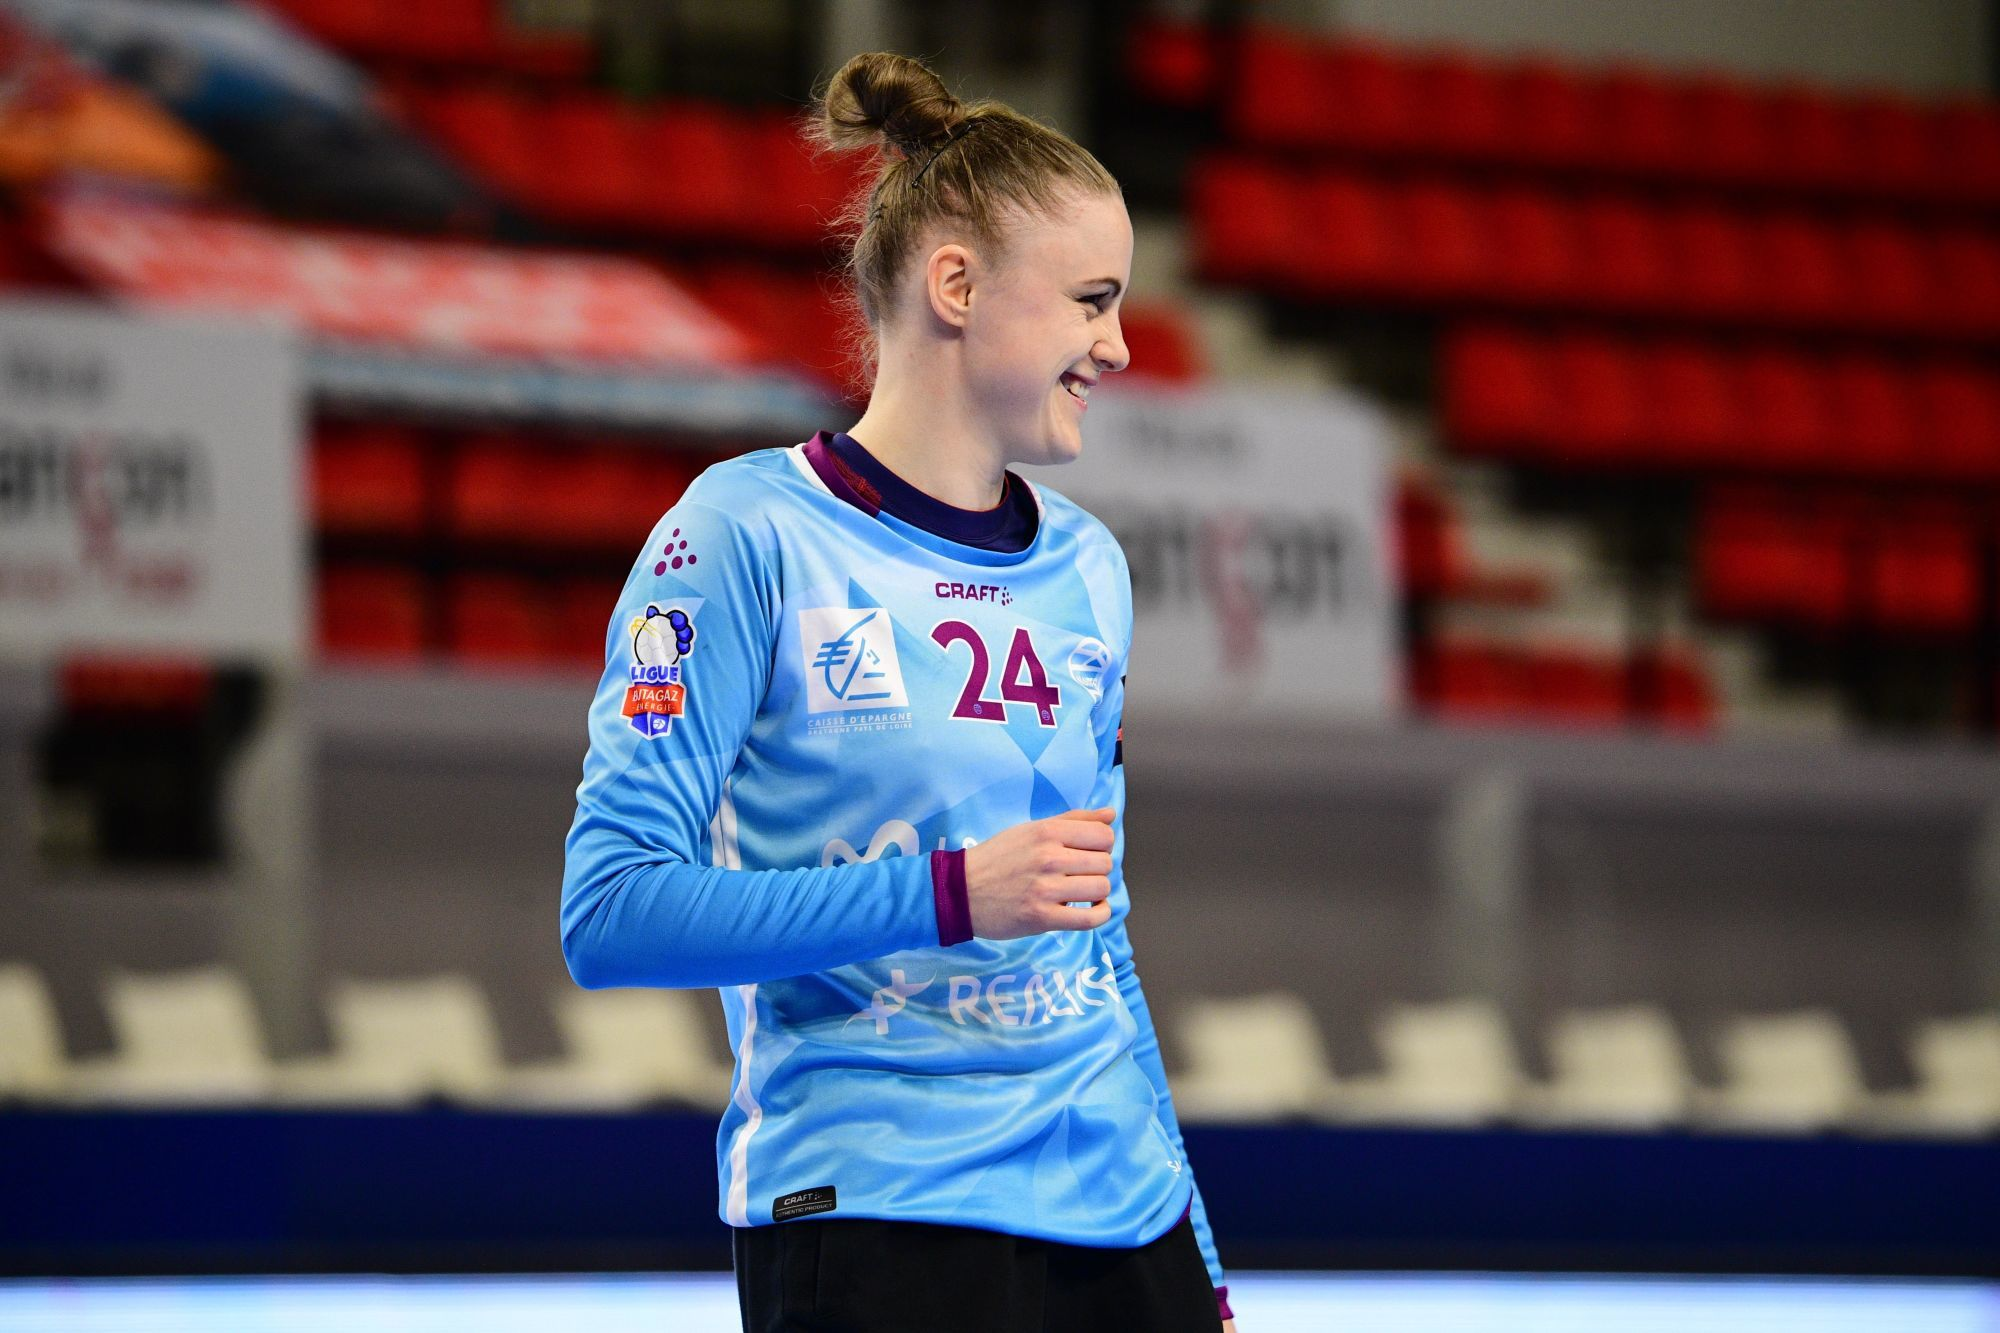 Adrianna PLACZEK of Nantes during the Women's Division 1 match between Besancon and Nantes on 27January, 2021 in Fleury-les-Aubrais, France. (Photo by Sebastien Bozon/Icon Sport) - Adrianna PLACZEK -  (France)